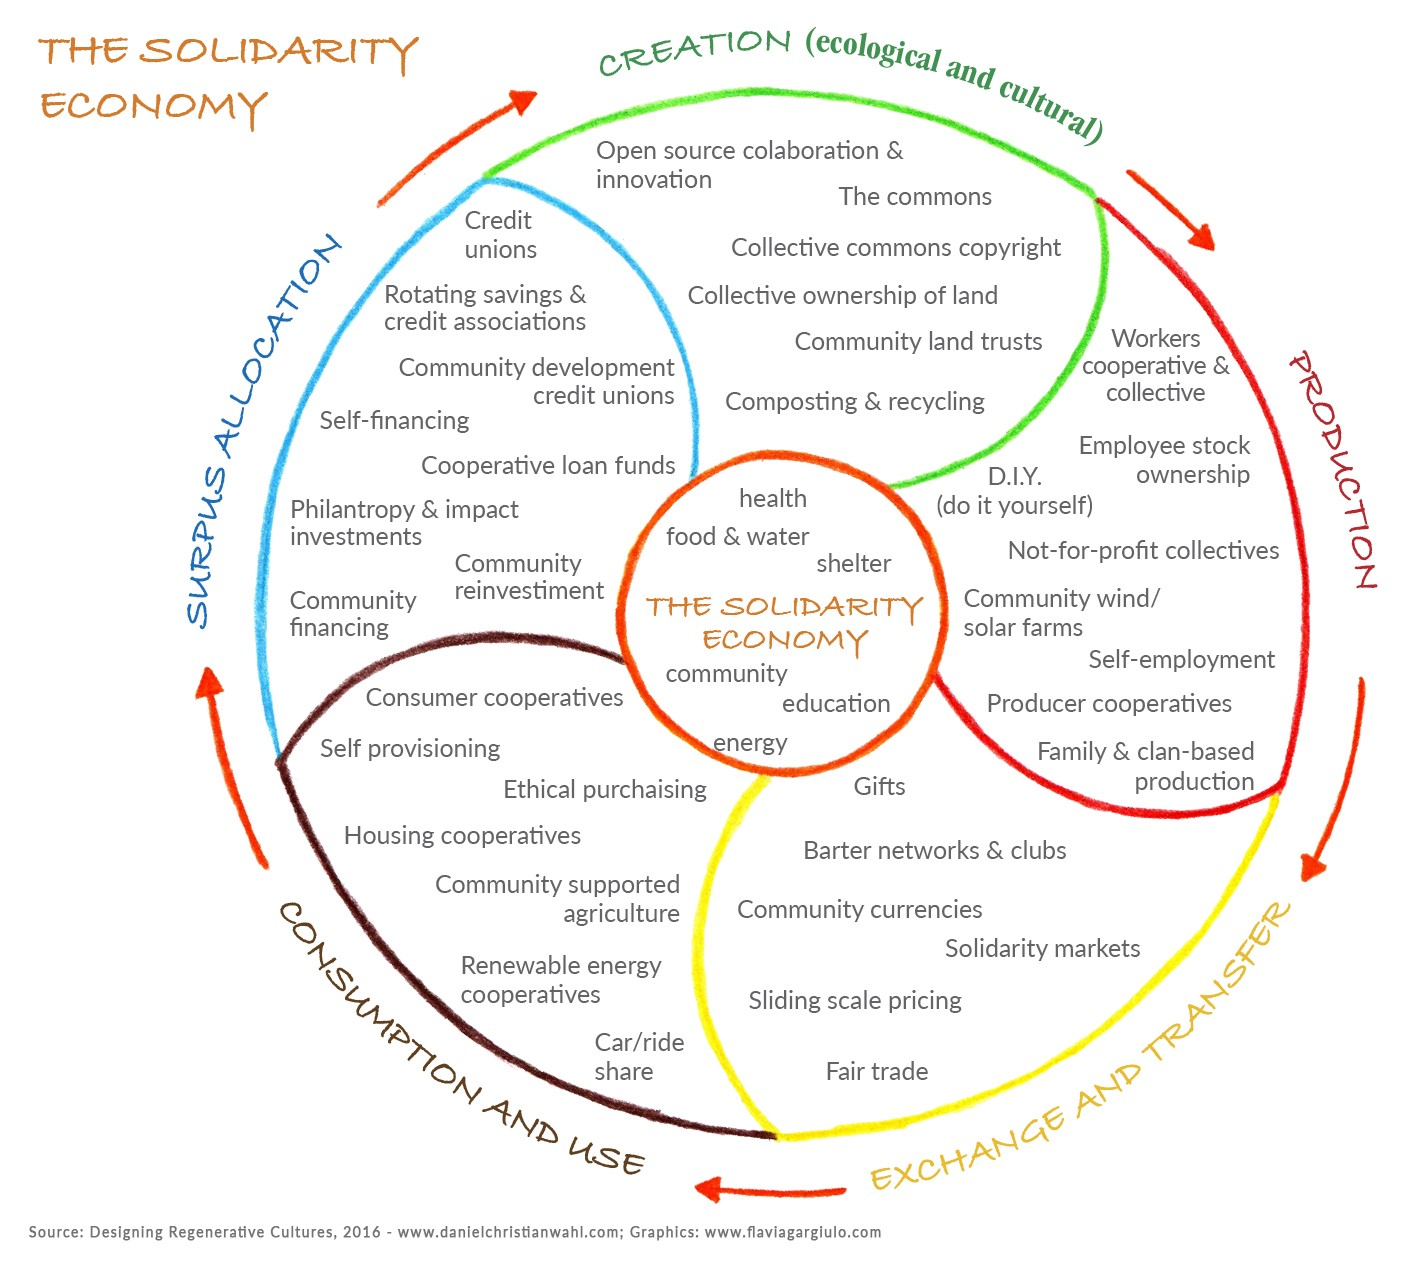 Thriving communities the solidarity economy daniel christian figure 25 the solidarity economy redrawn with original content with permission of ethan miller malvernweather